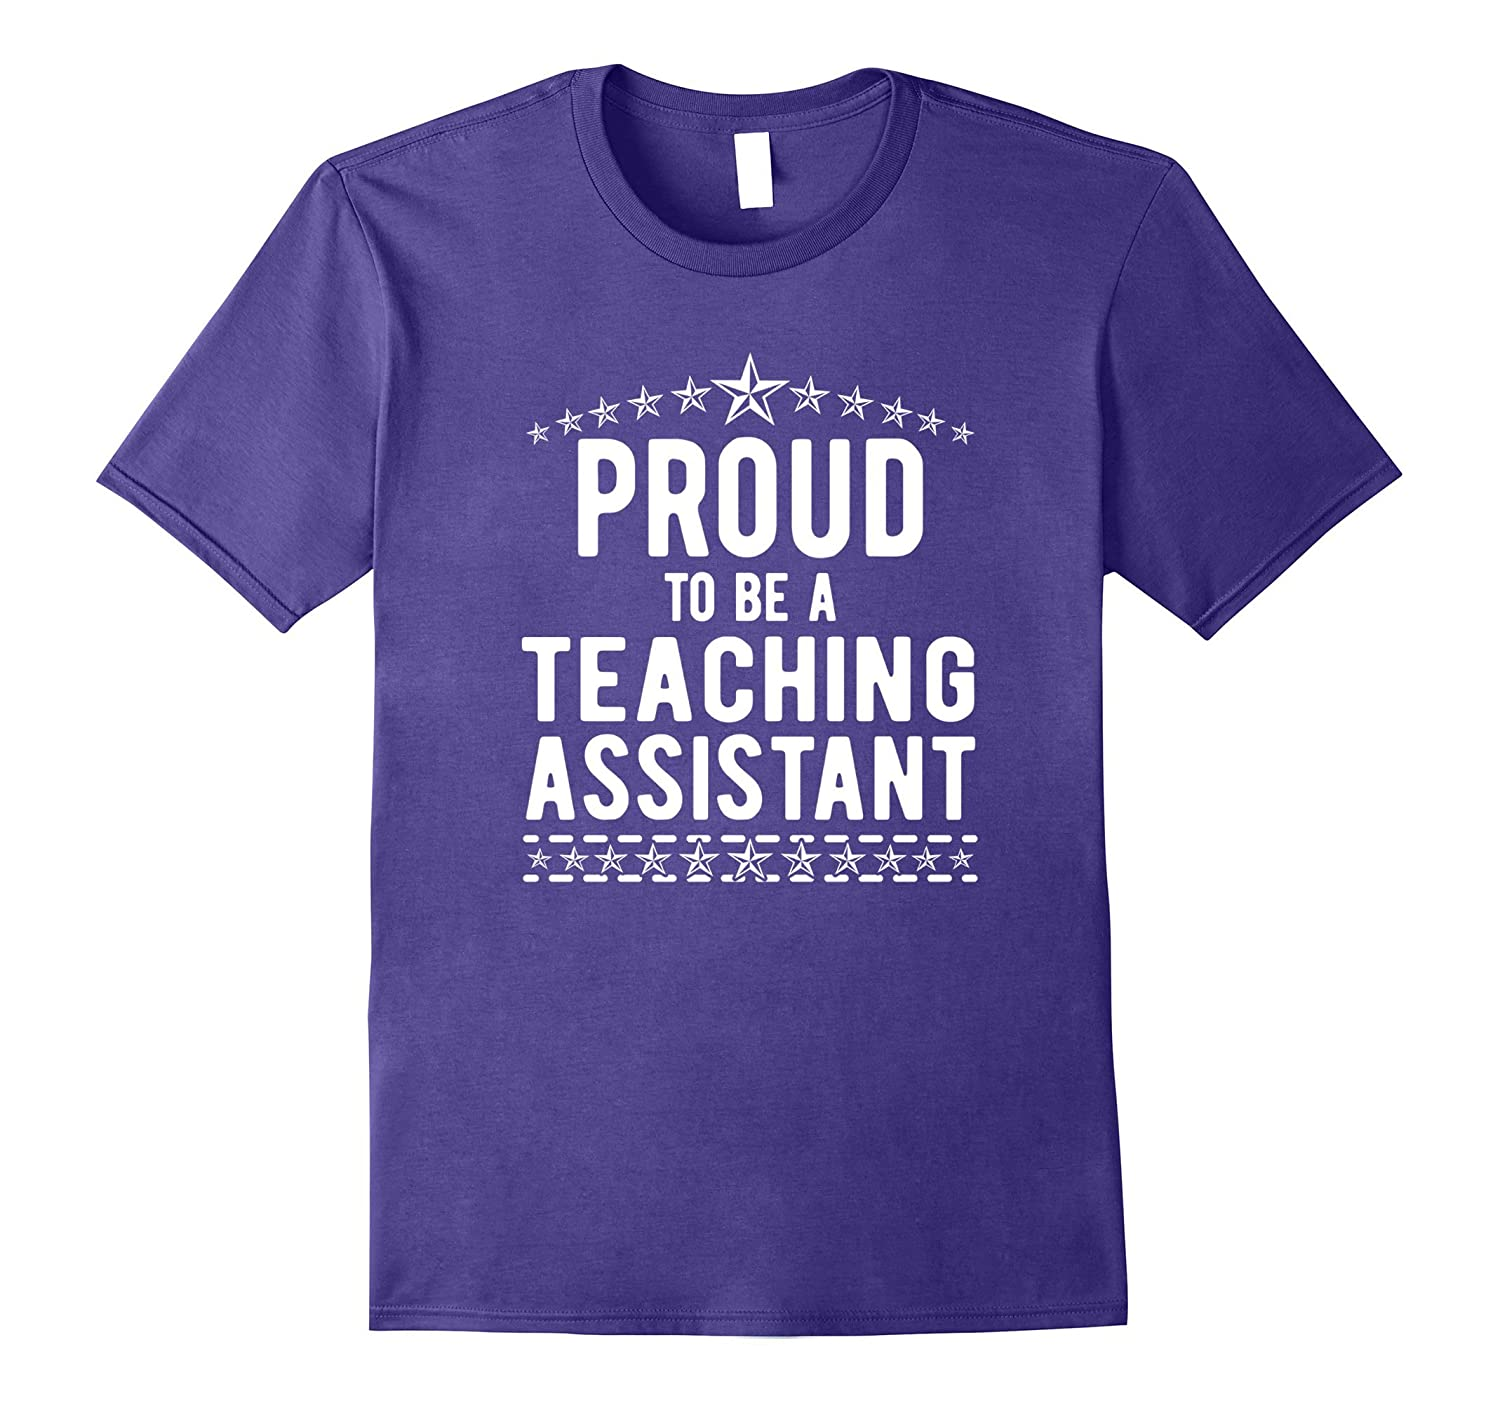 The Official Proud to Be a Teaching Assistant T-Shirt-TJ